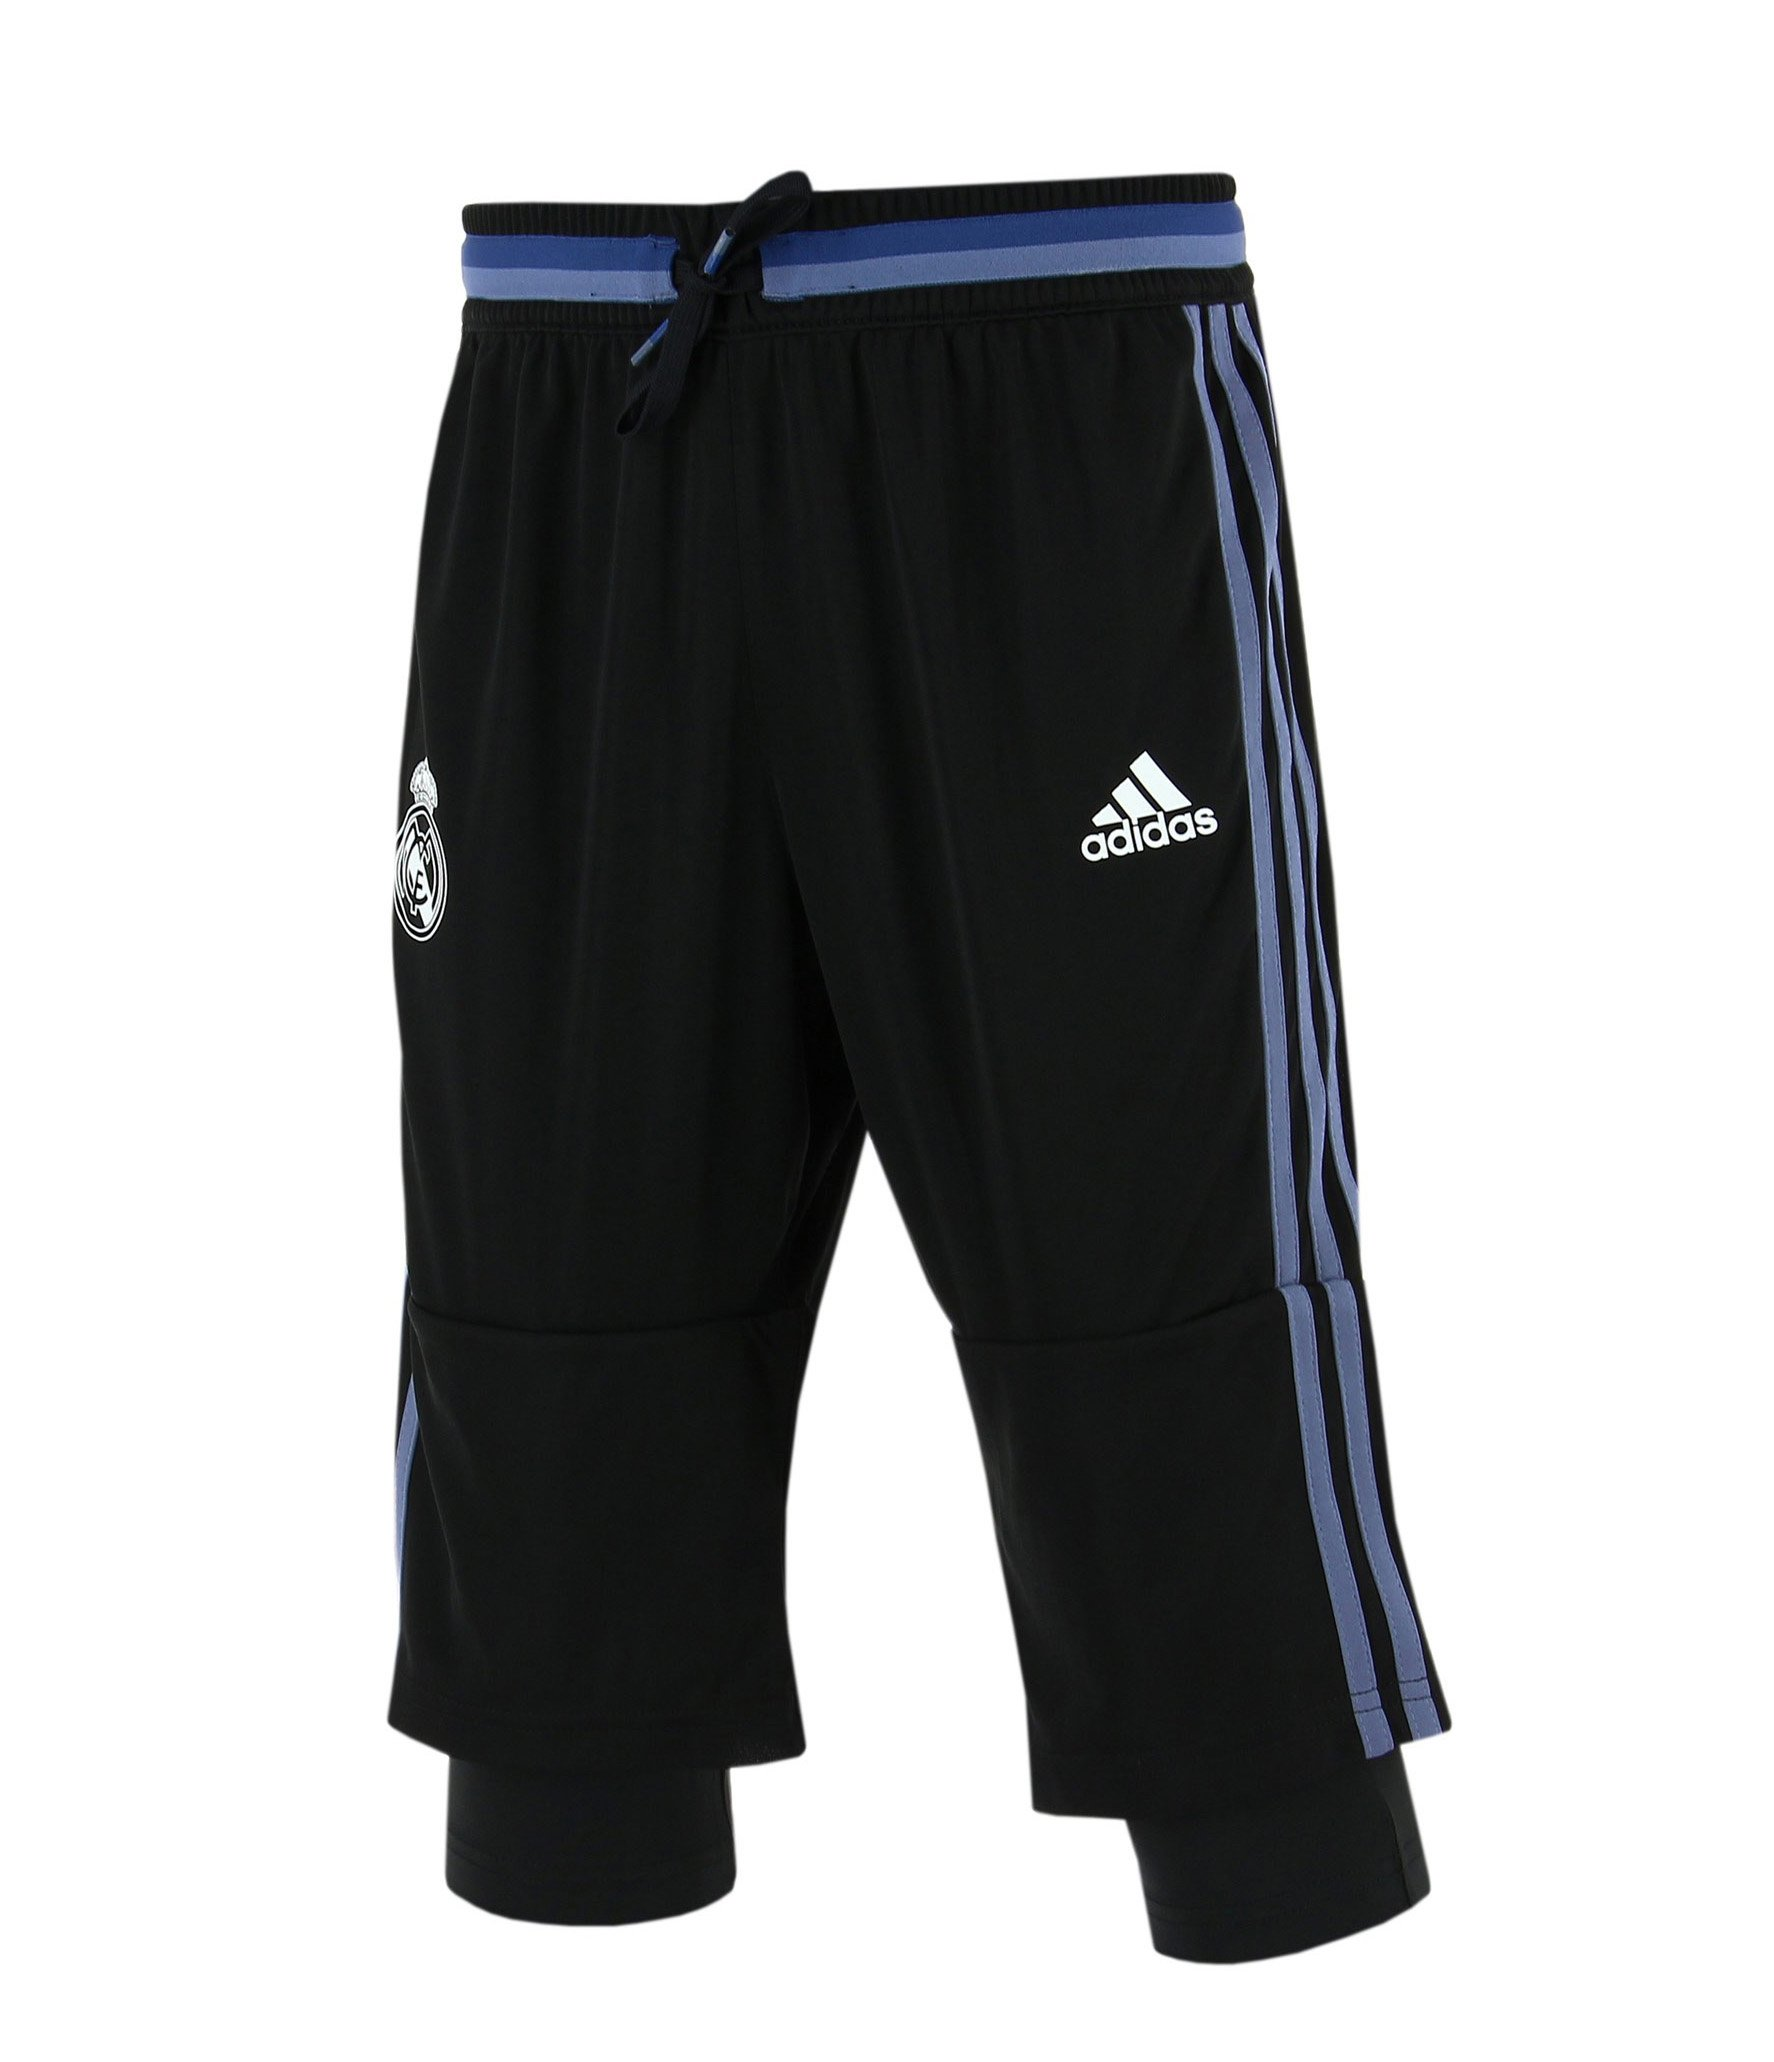 2016-2017 Real Madrid YOUTH three quarter pants (Youth Small)